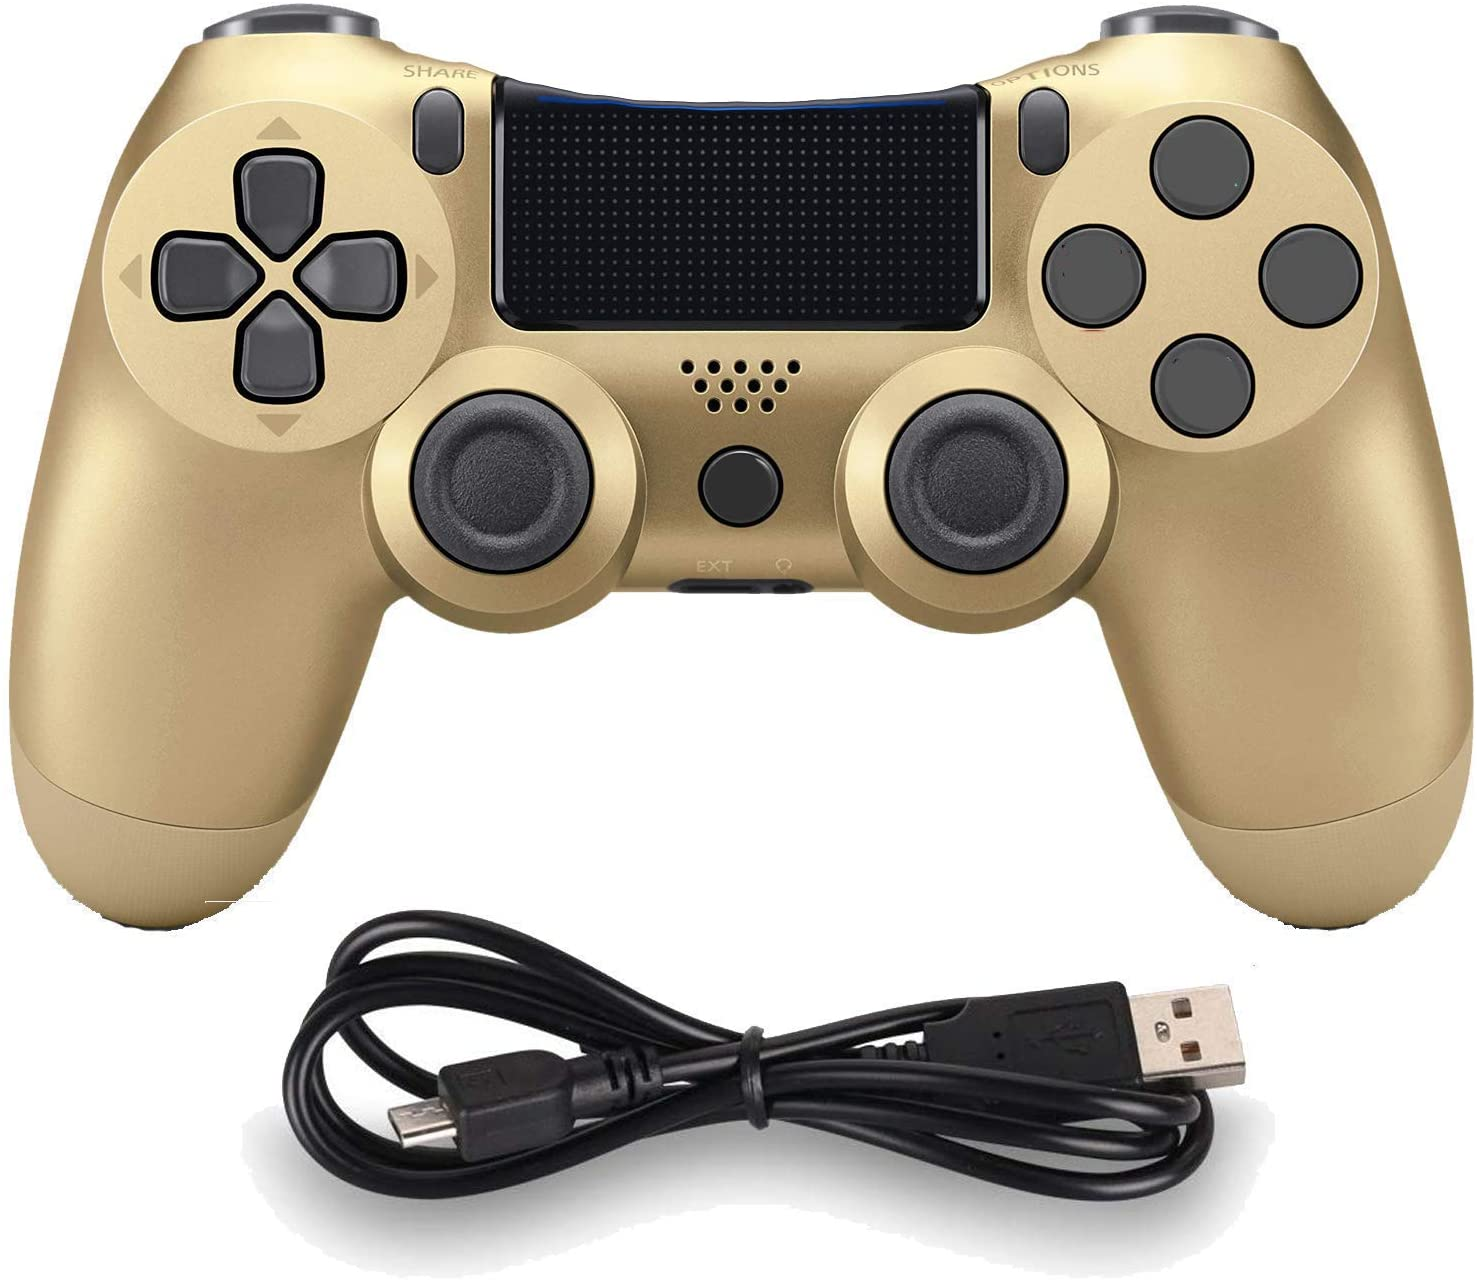 Wireless Controllers for PS4 Playstation 4 Dual Shock Six-axis,Bluetooth Remote Gaming Gamepad Joystick (Gold)